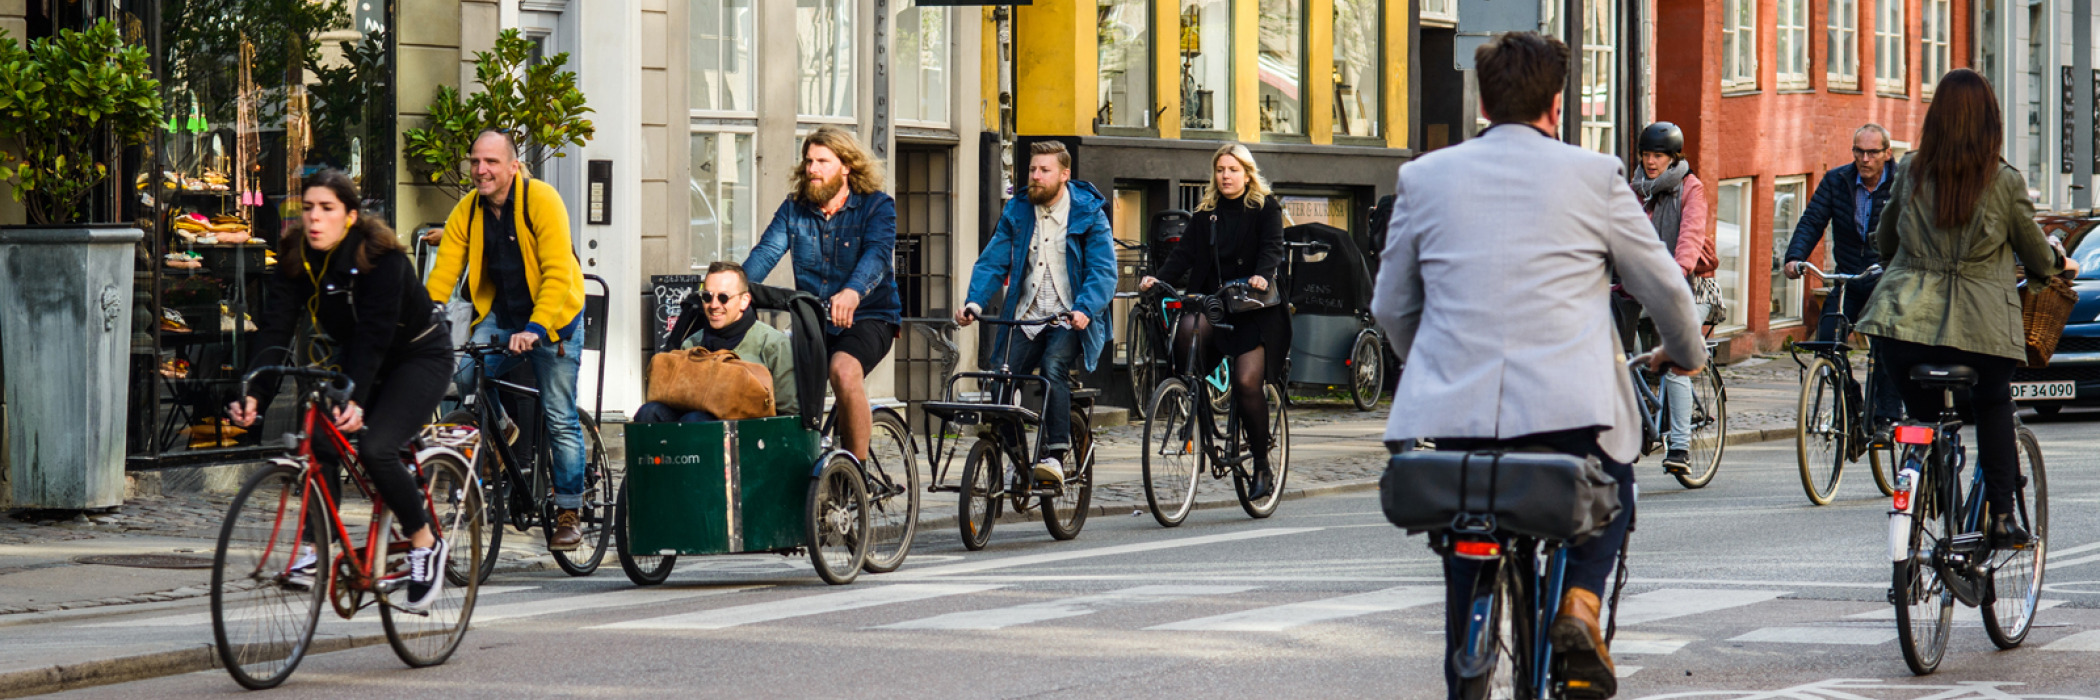 "Copenhagen is not only considered a pioneer in terms of air quality, but is also regularly ranked one of the ""most liveable cities"" worldwide."